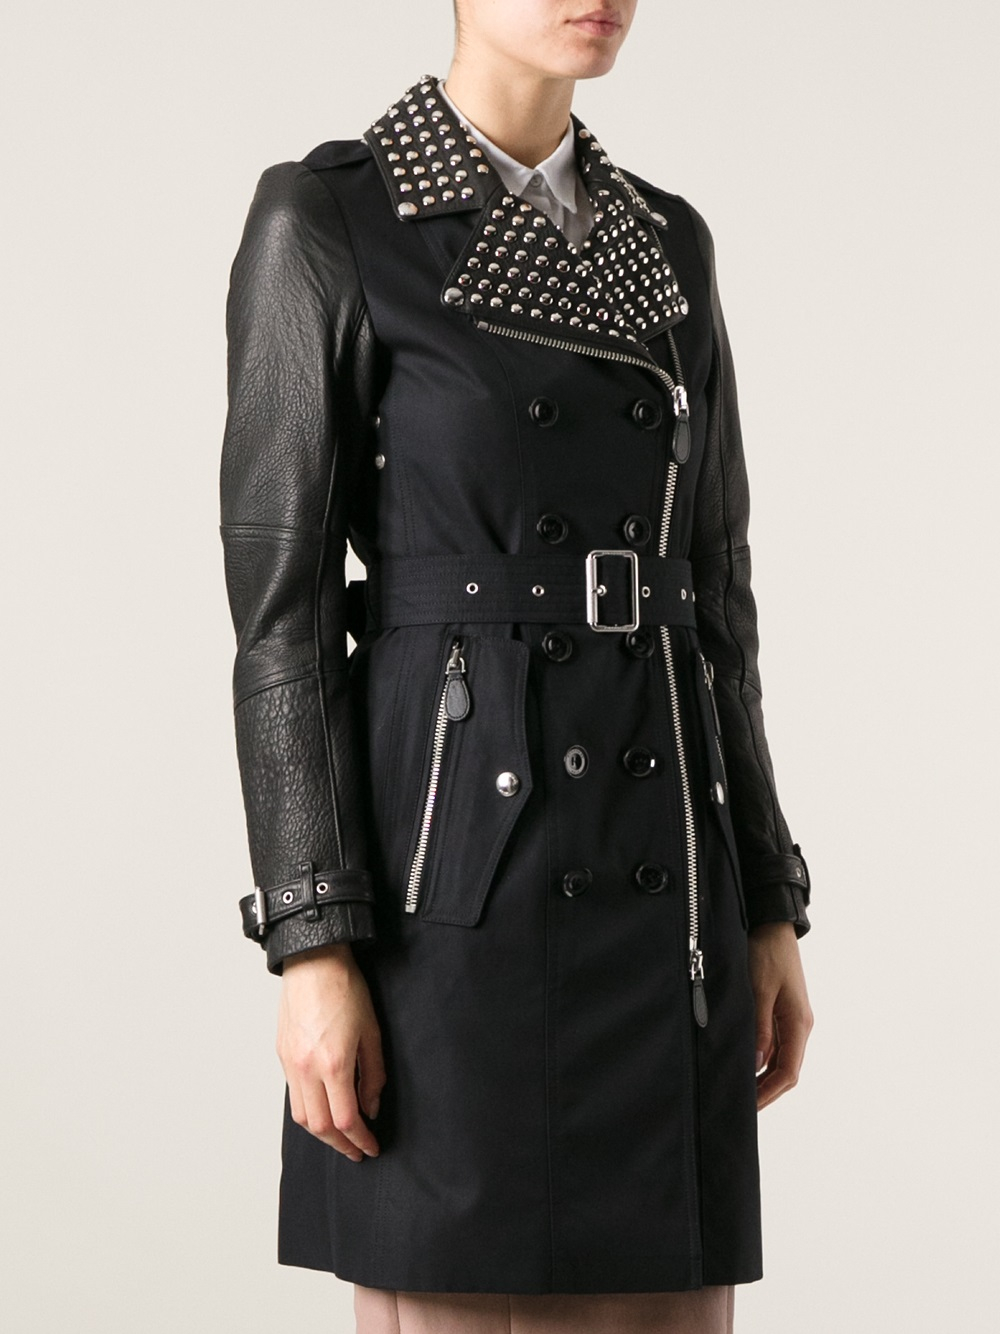 Women's Black Trench Coats. Clothing. Women. Womens Coats & Jackets. Women's Black Trench Coats. Showing 48 of 90 results that match your query. Search Product Result. Product - Plus Size Womens Autumn Fall Winter Outwear Long Trench Coat .